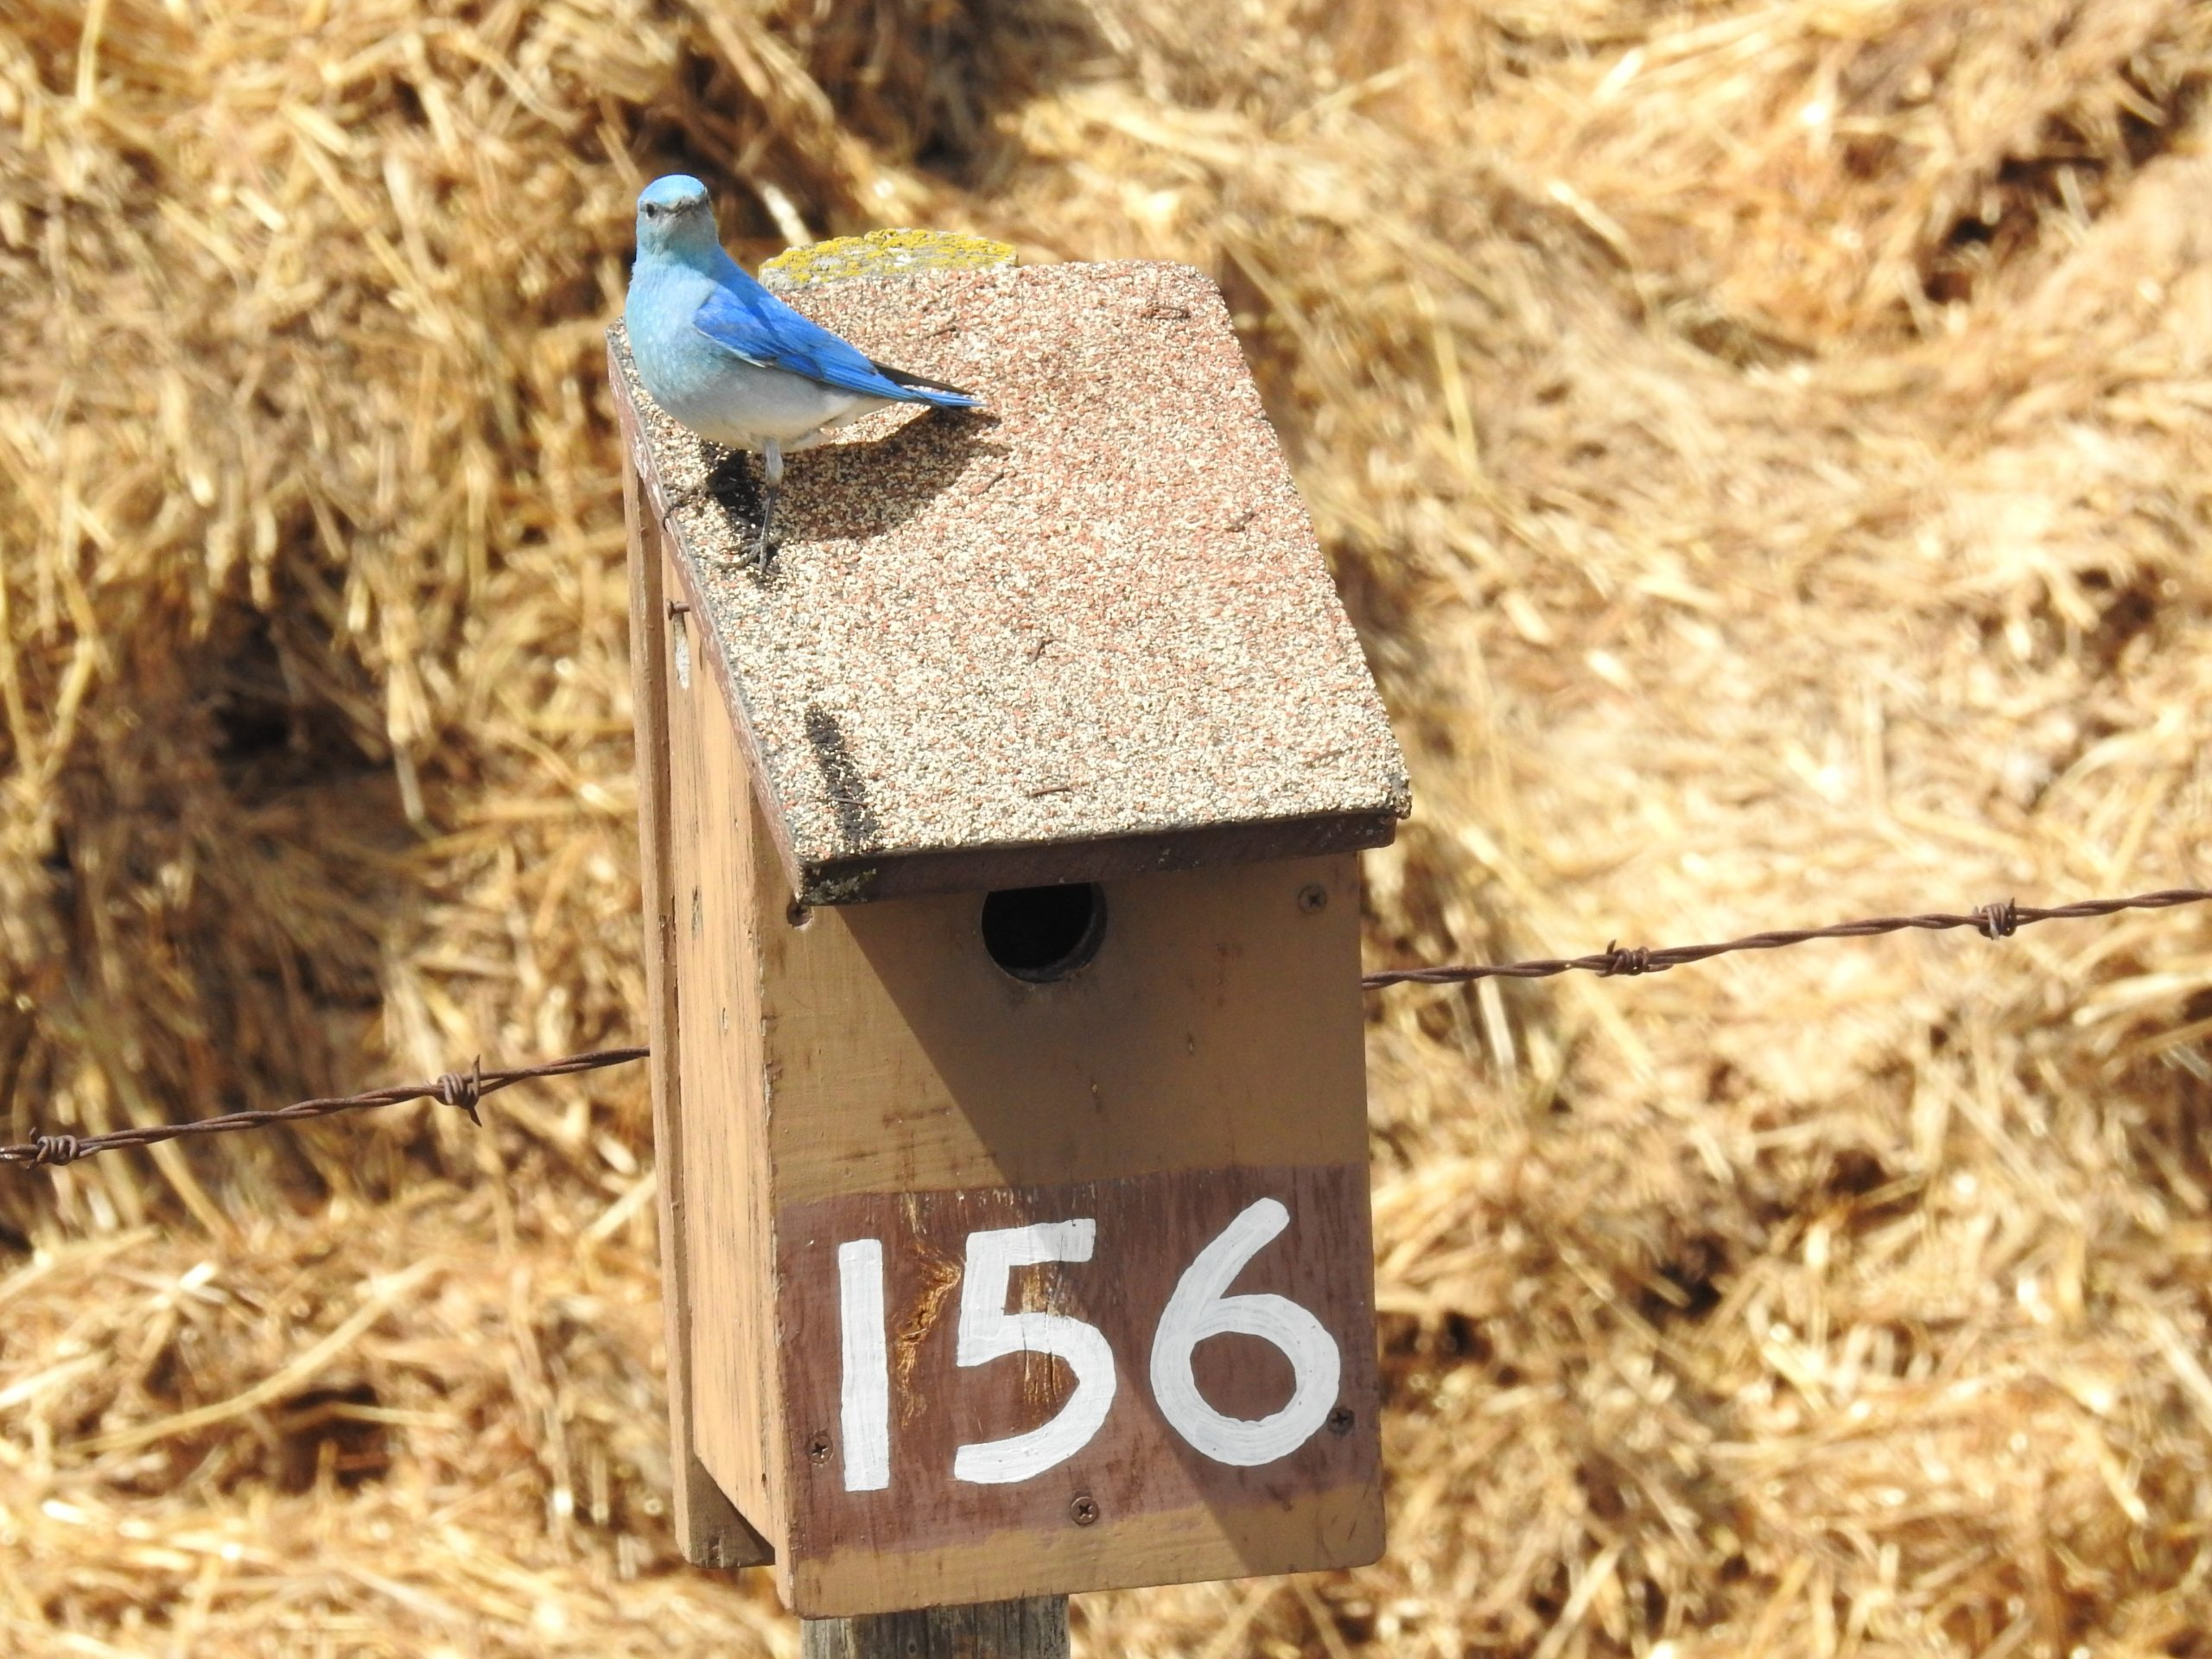 blue bird of a mailbox - Canadian Mortgage Pros